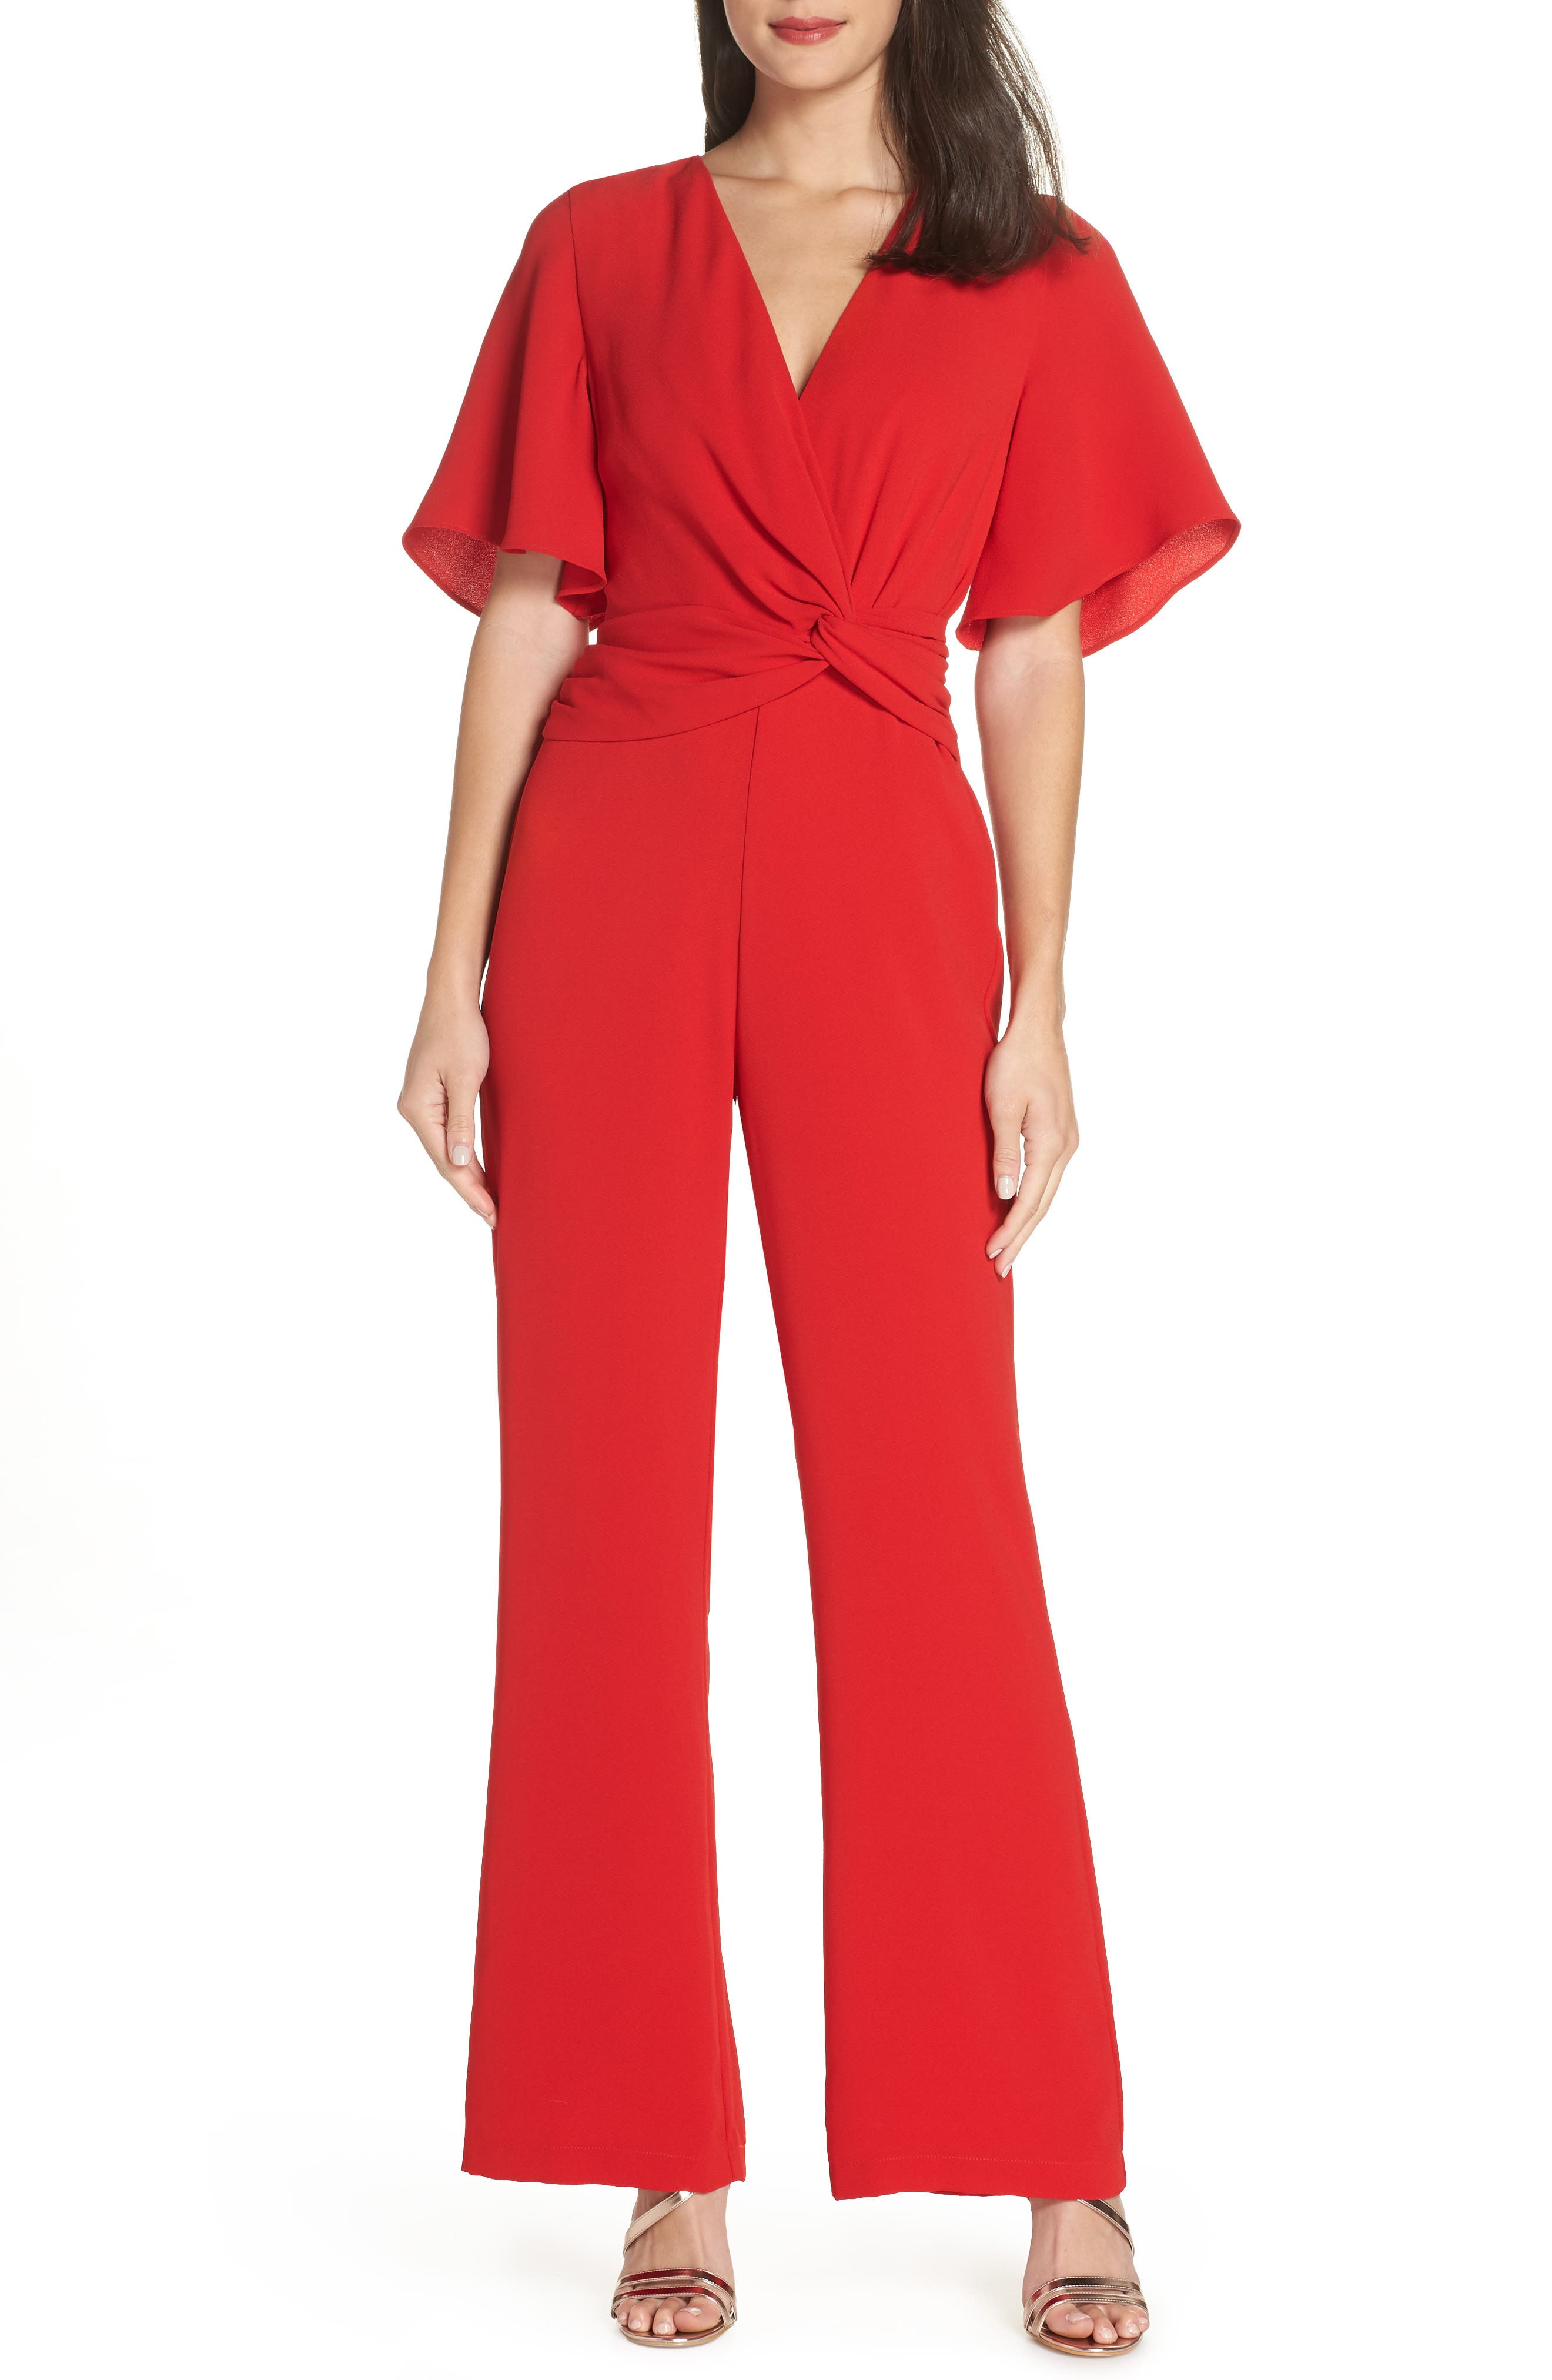 Vintage High Waisted Trousers, Sailor Pants, Jeans Womens Harlyn Twist Front Jumpsuit Size X-Large - Red $148.00 AT vintagedancer.com